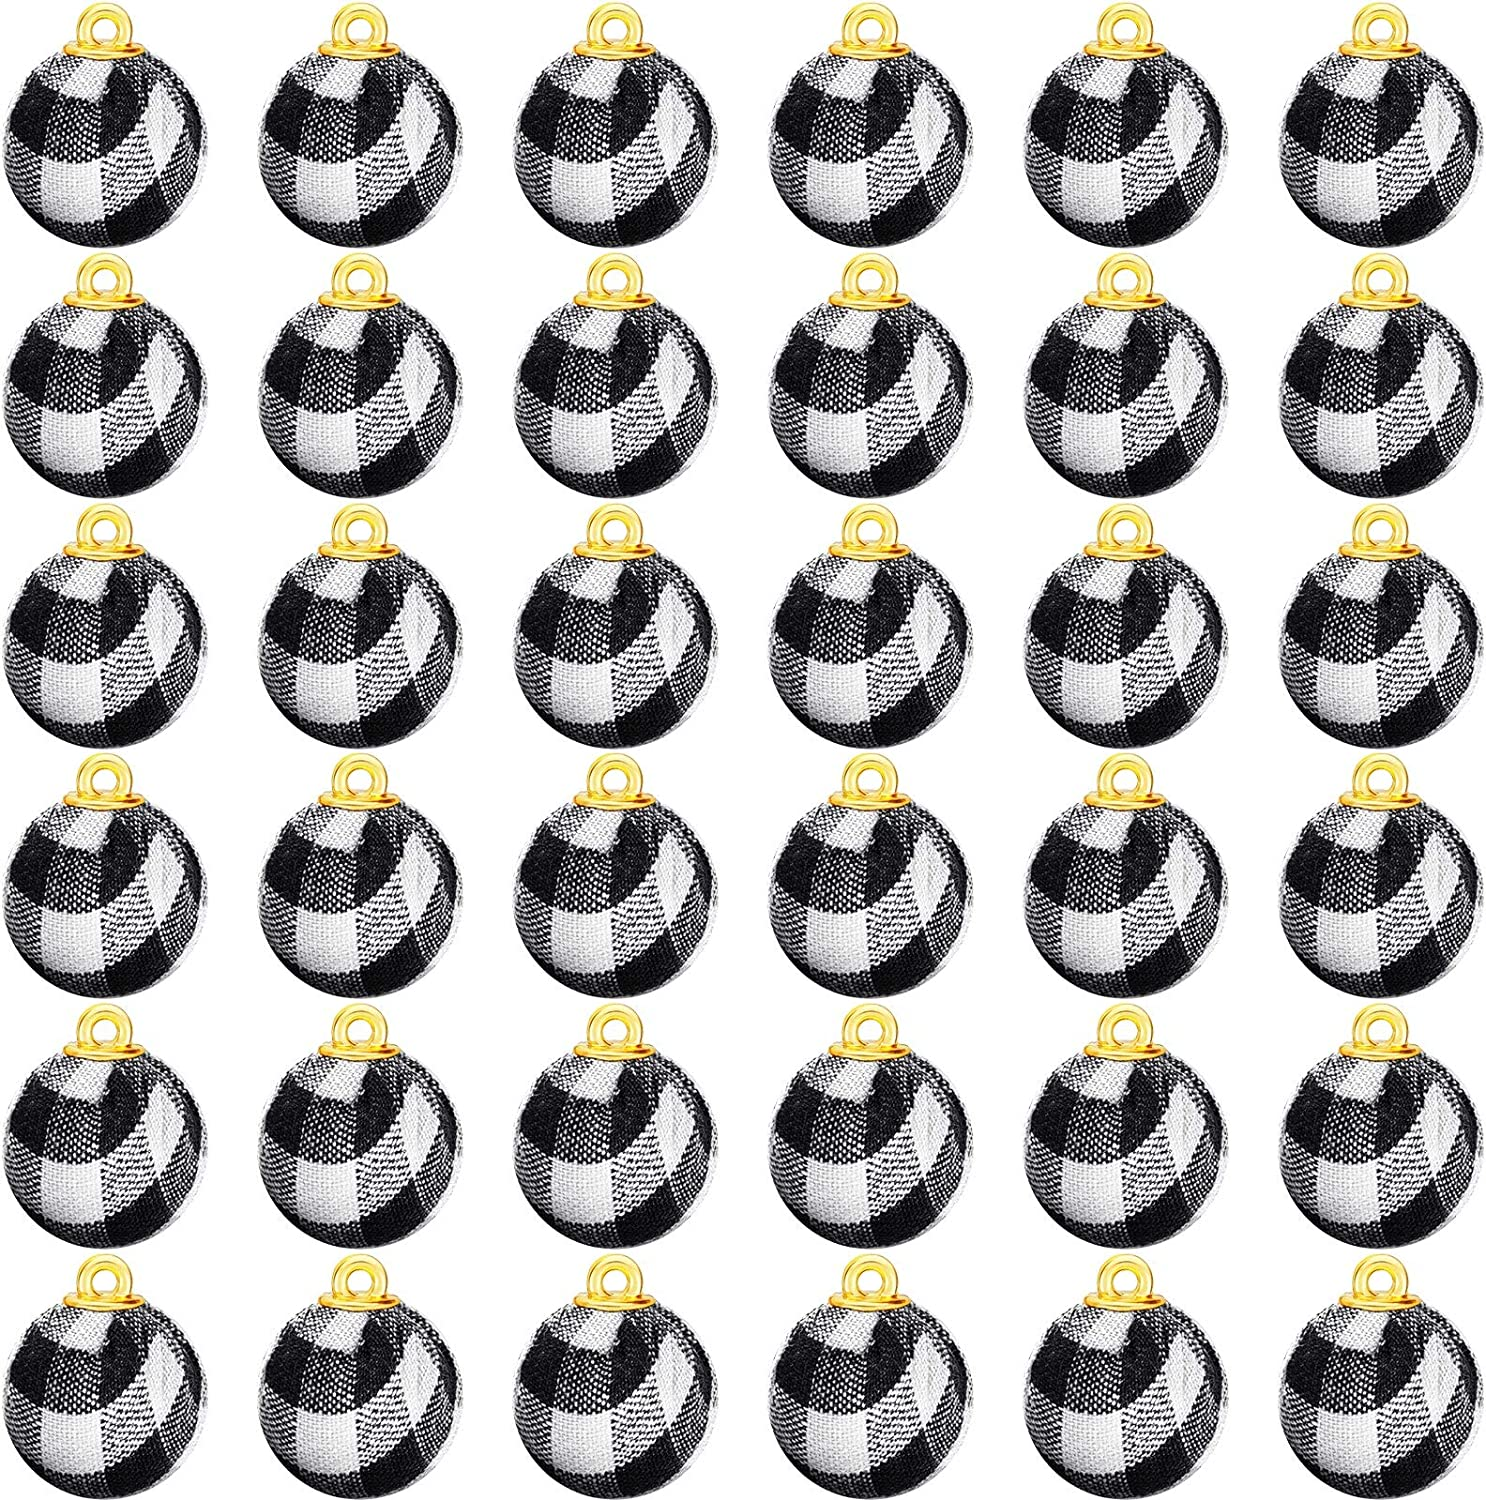 36 Pieces Christmas Plaid Ball Ornaments Buffalo Check Fabric Wrapped Balls Christmas Tree Hanging Pendants for Holiday Presents Christmas Party Supplies (White and Black,2.5 cm)